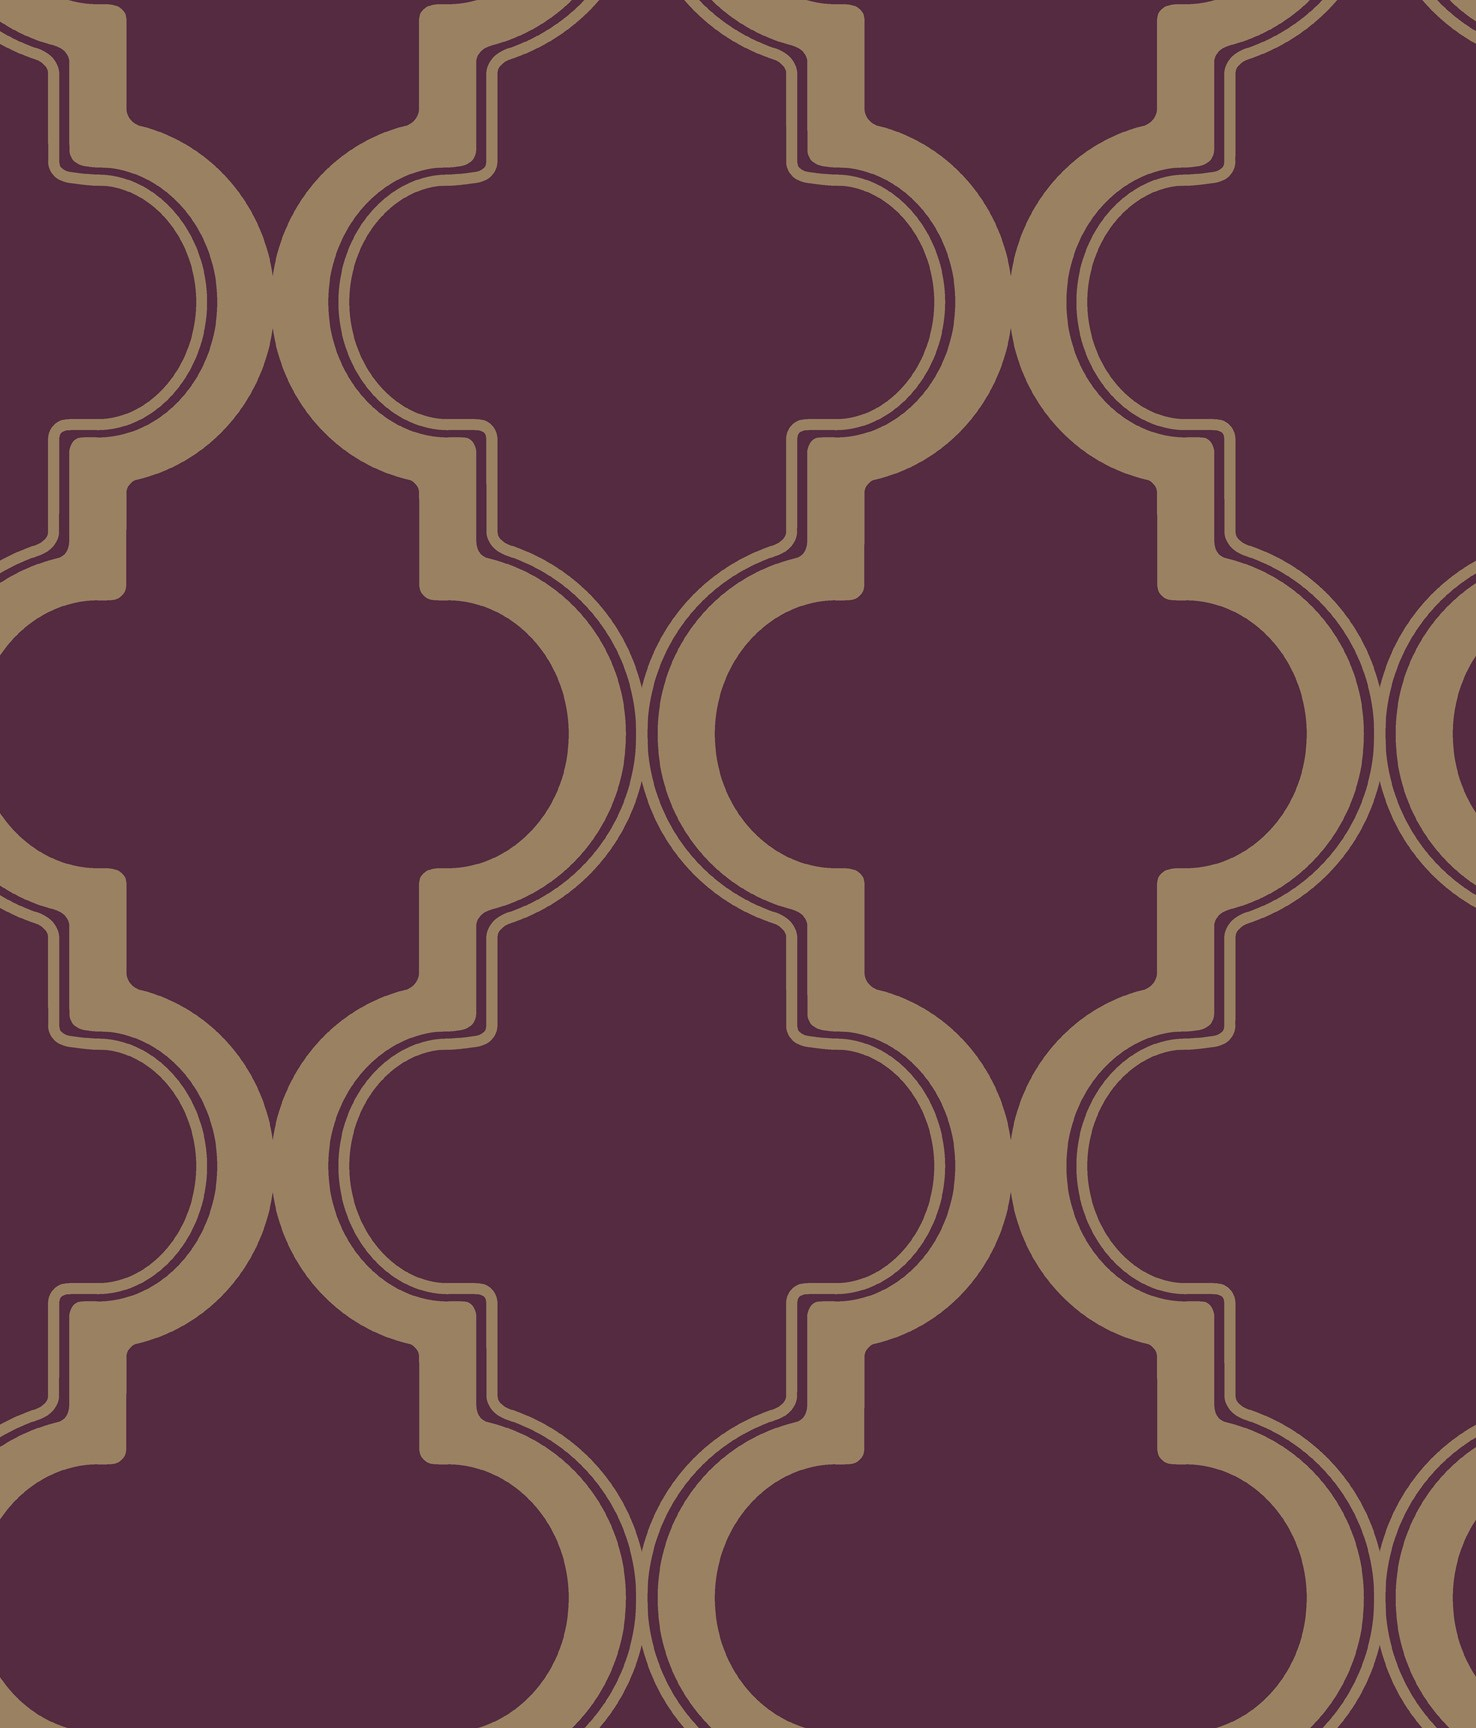 charming Marrakesh Temporary Wallpaper Merlot by Tempaper Wallpaper for wall decor ideas